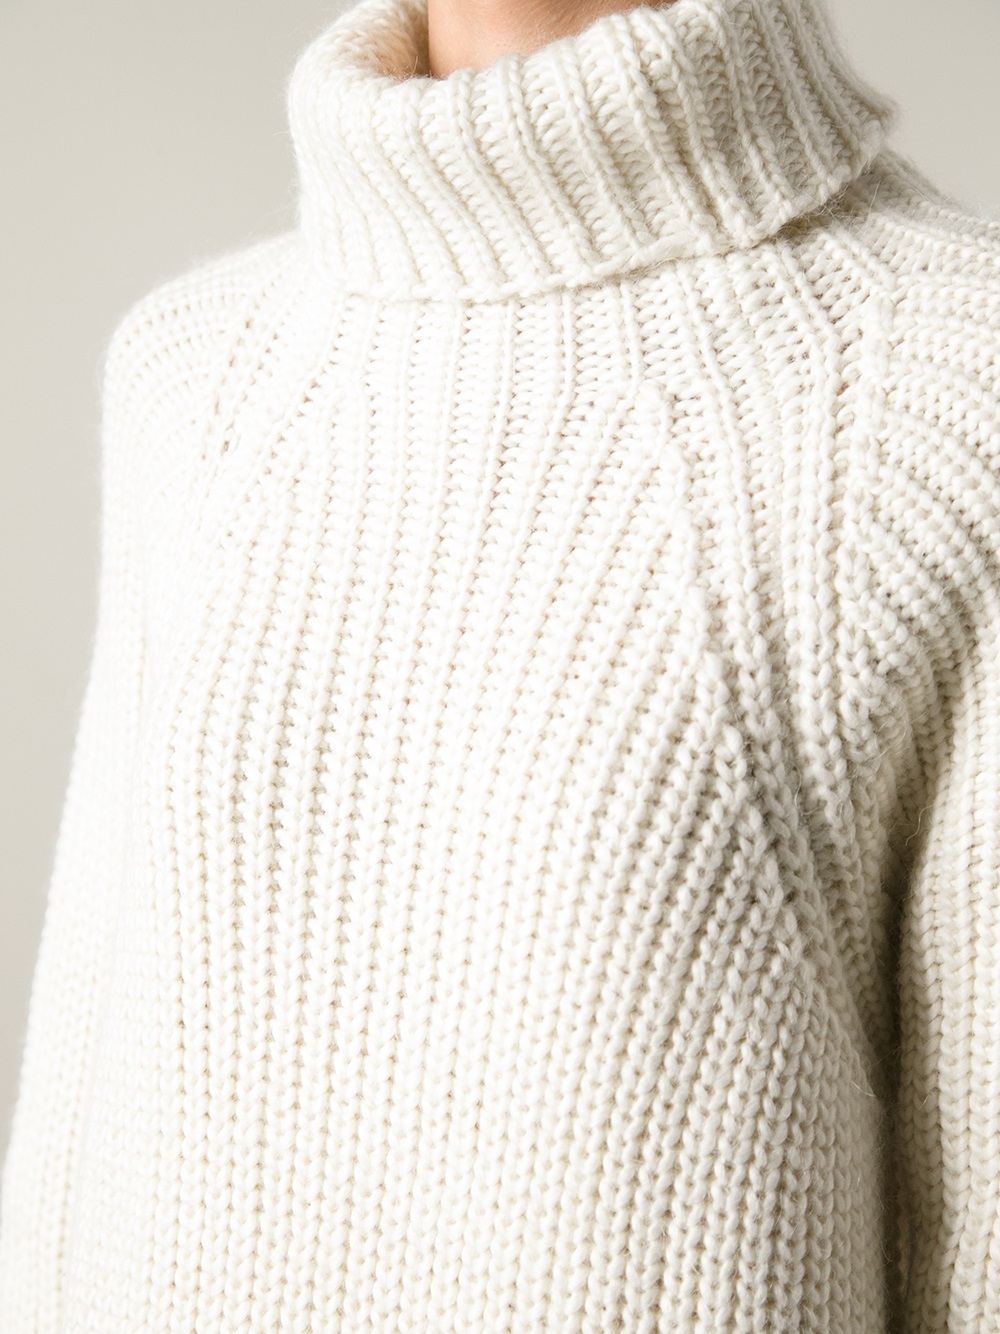 Carin wester Chunky Knit Sweater in White | Lyst